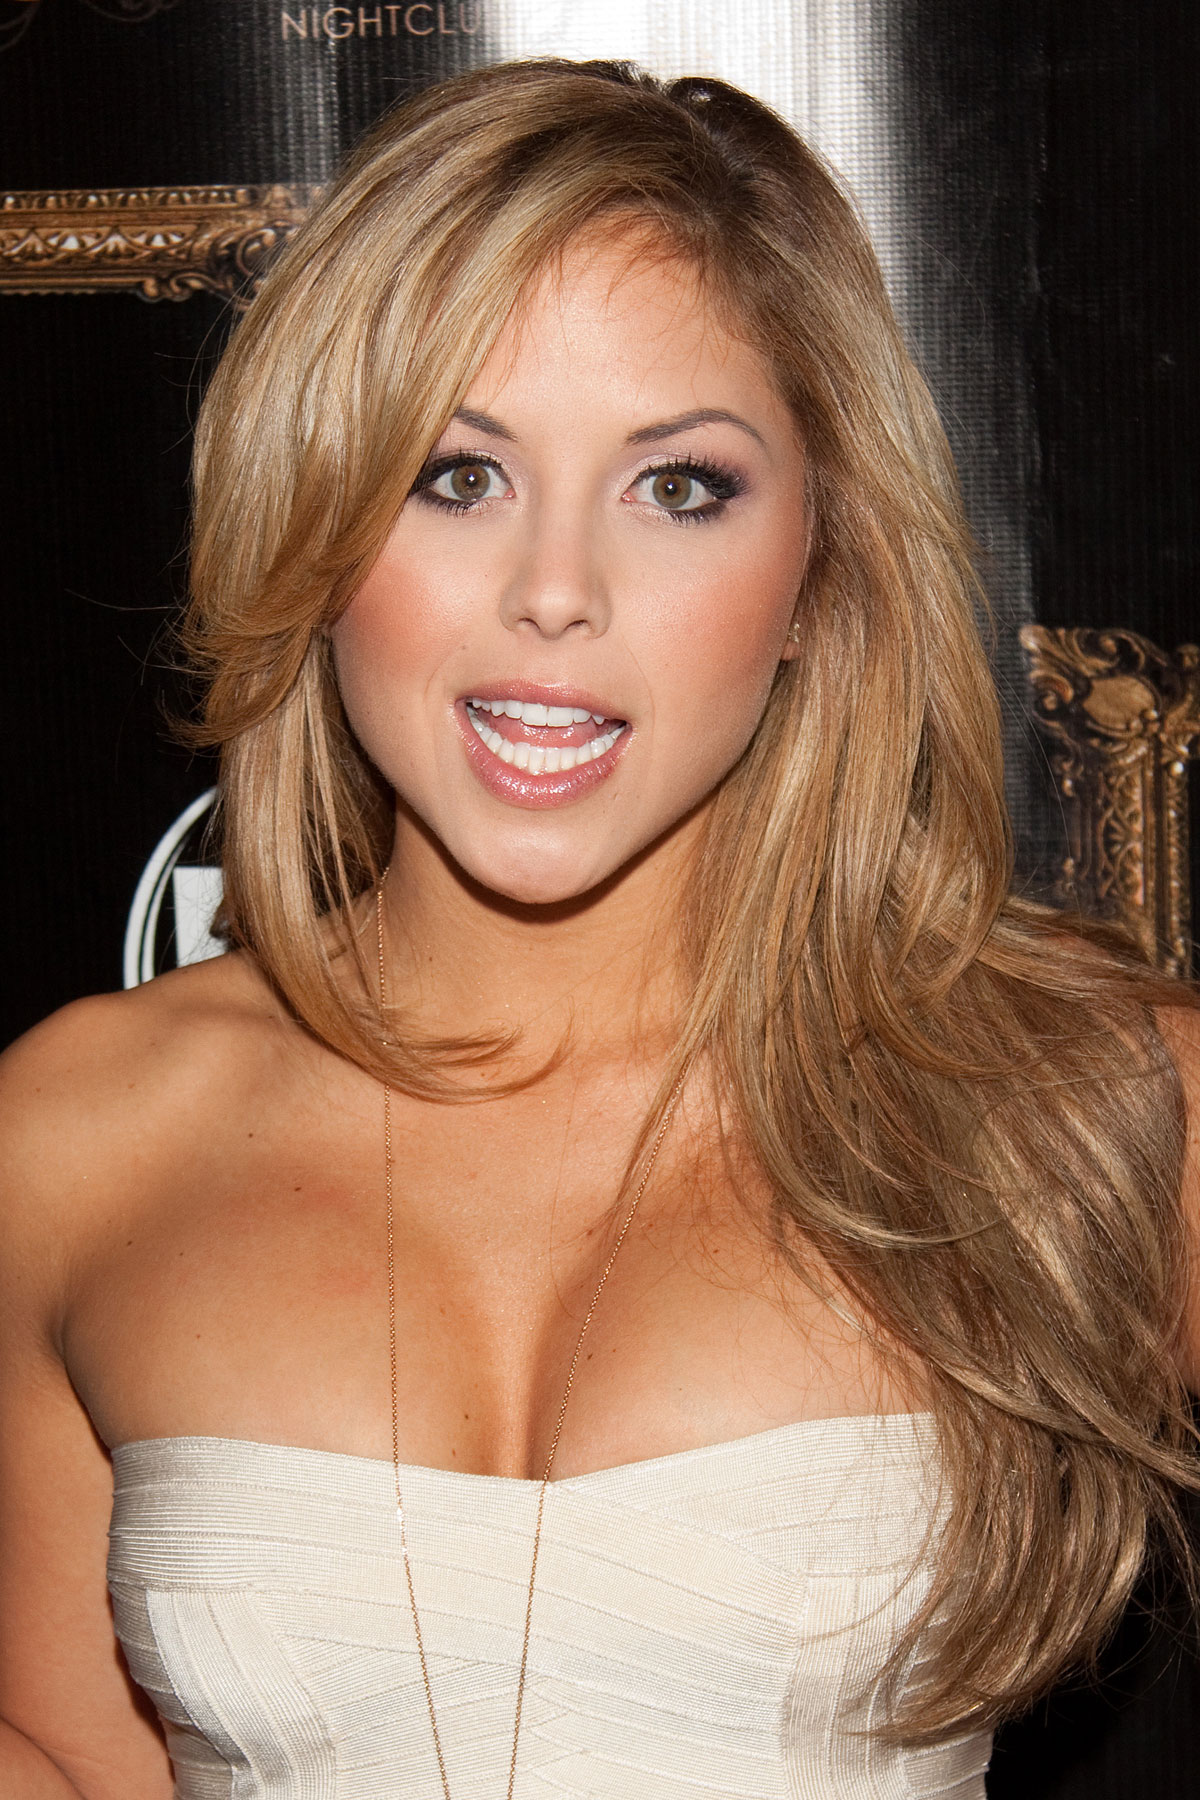 brittney palmer playboy - photo #9